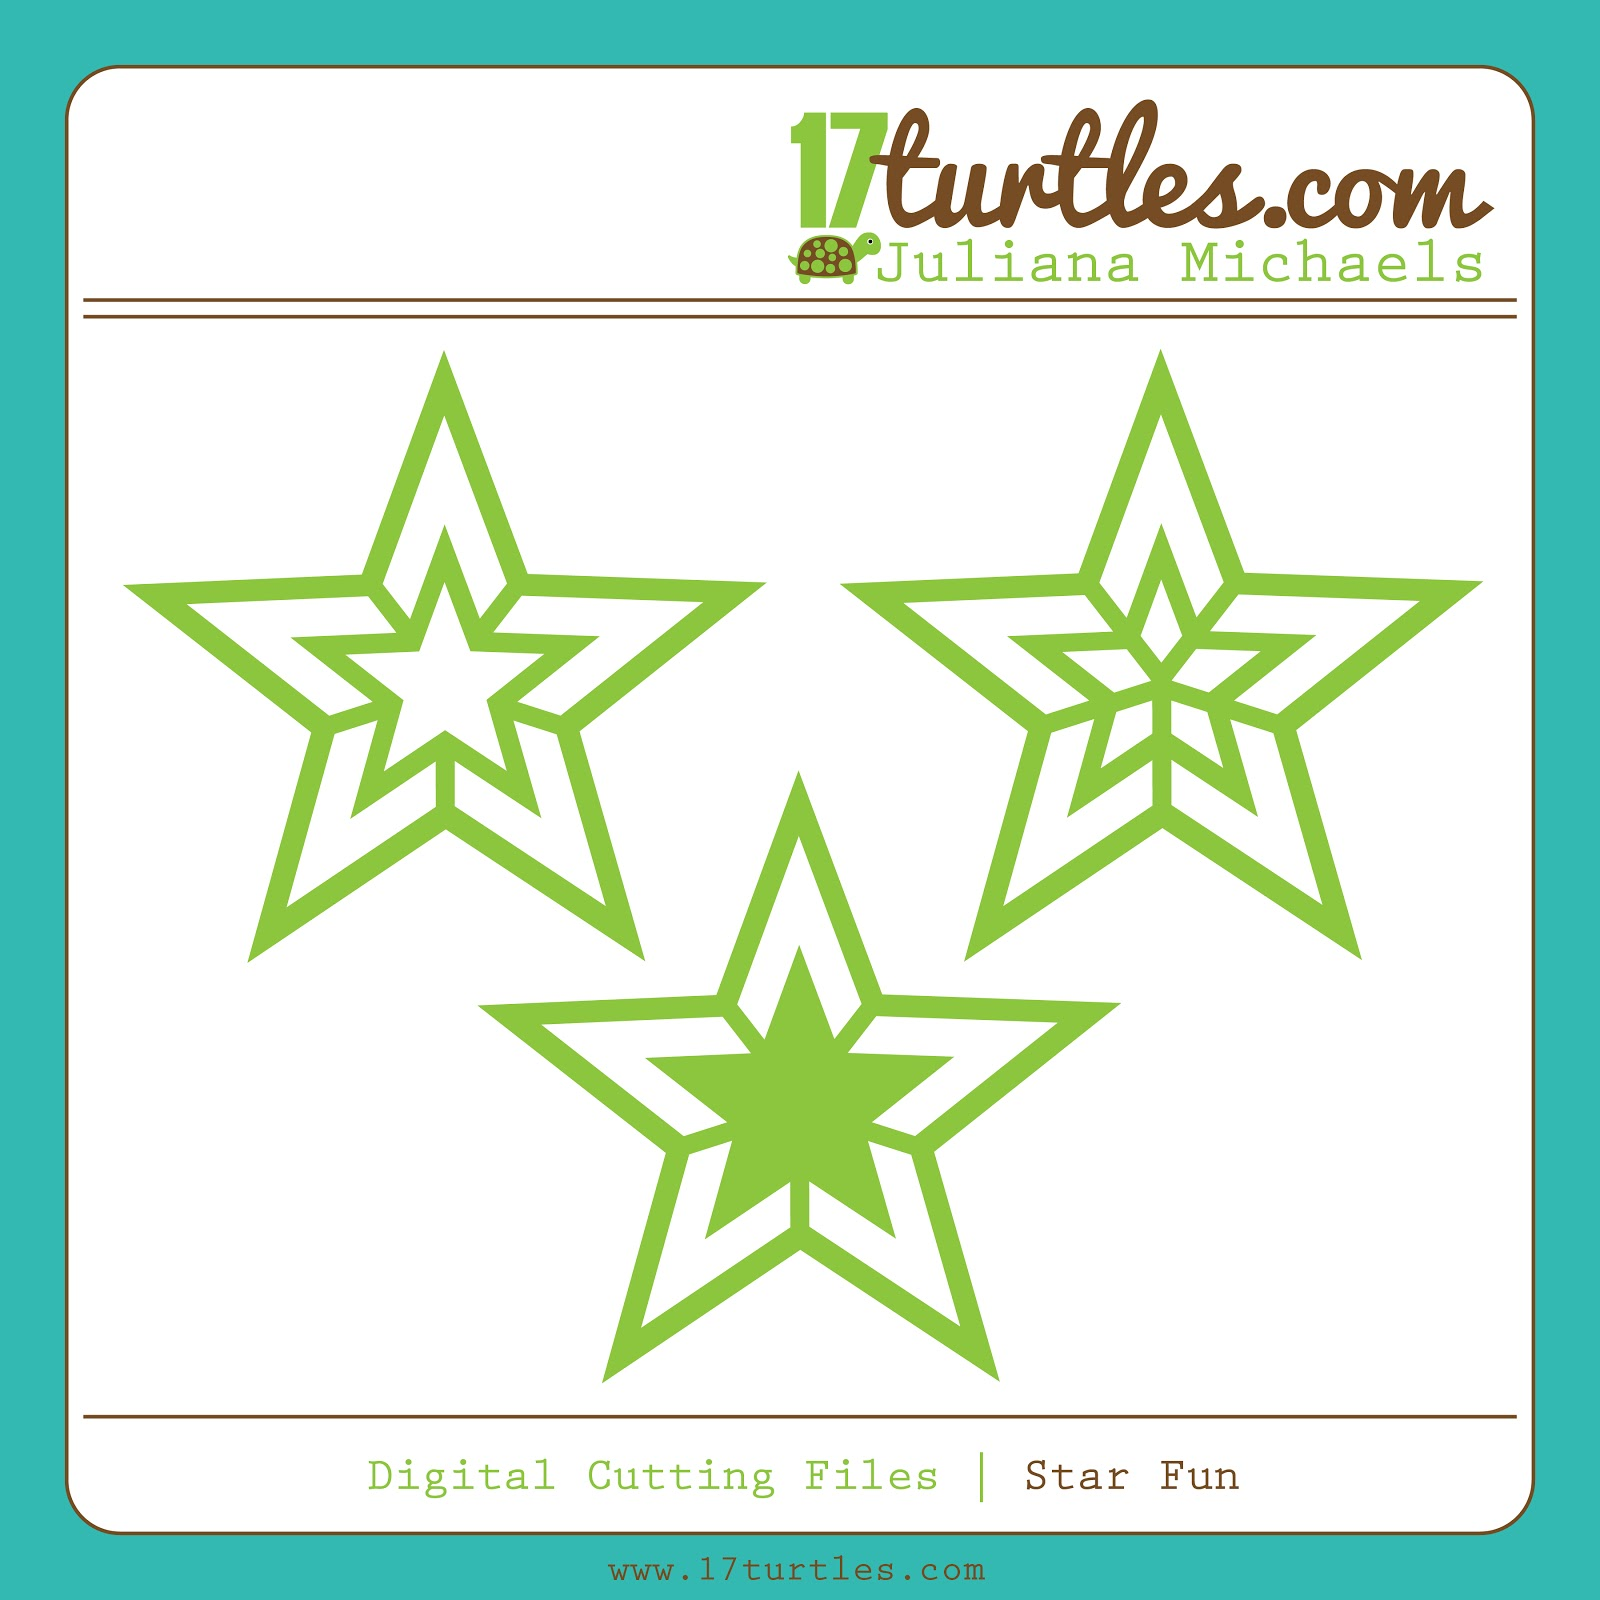 Star Fun FREE Digital Cut File by Juliana Michaels 17turtles